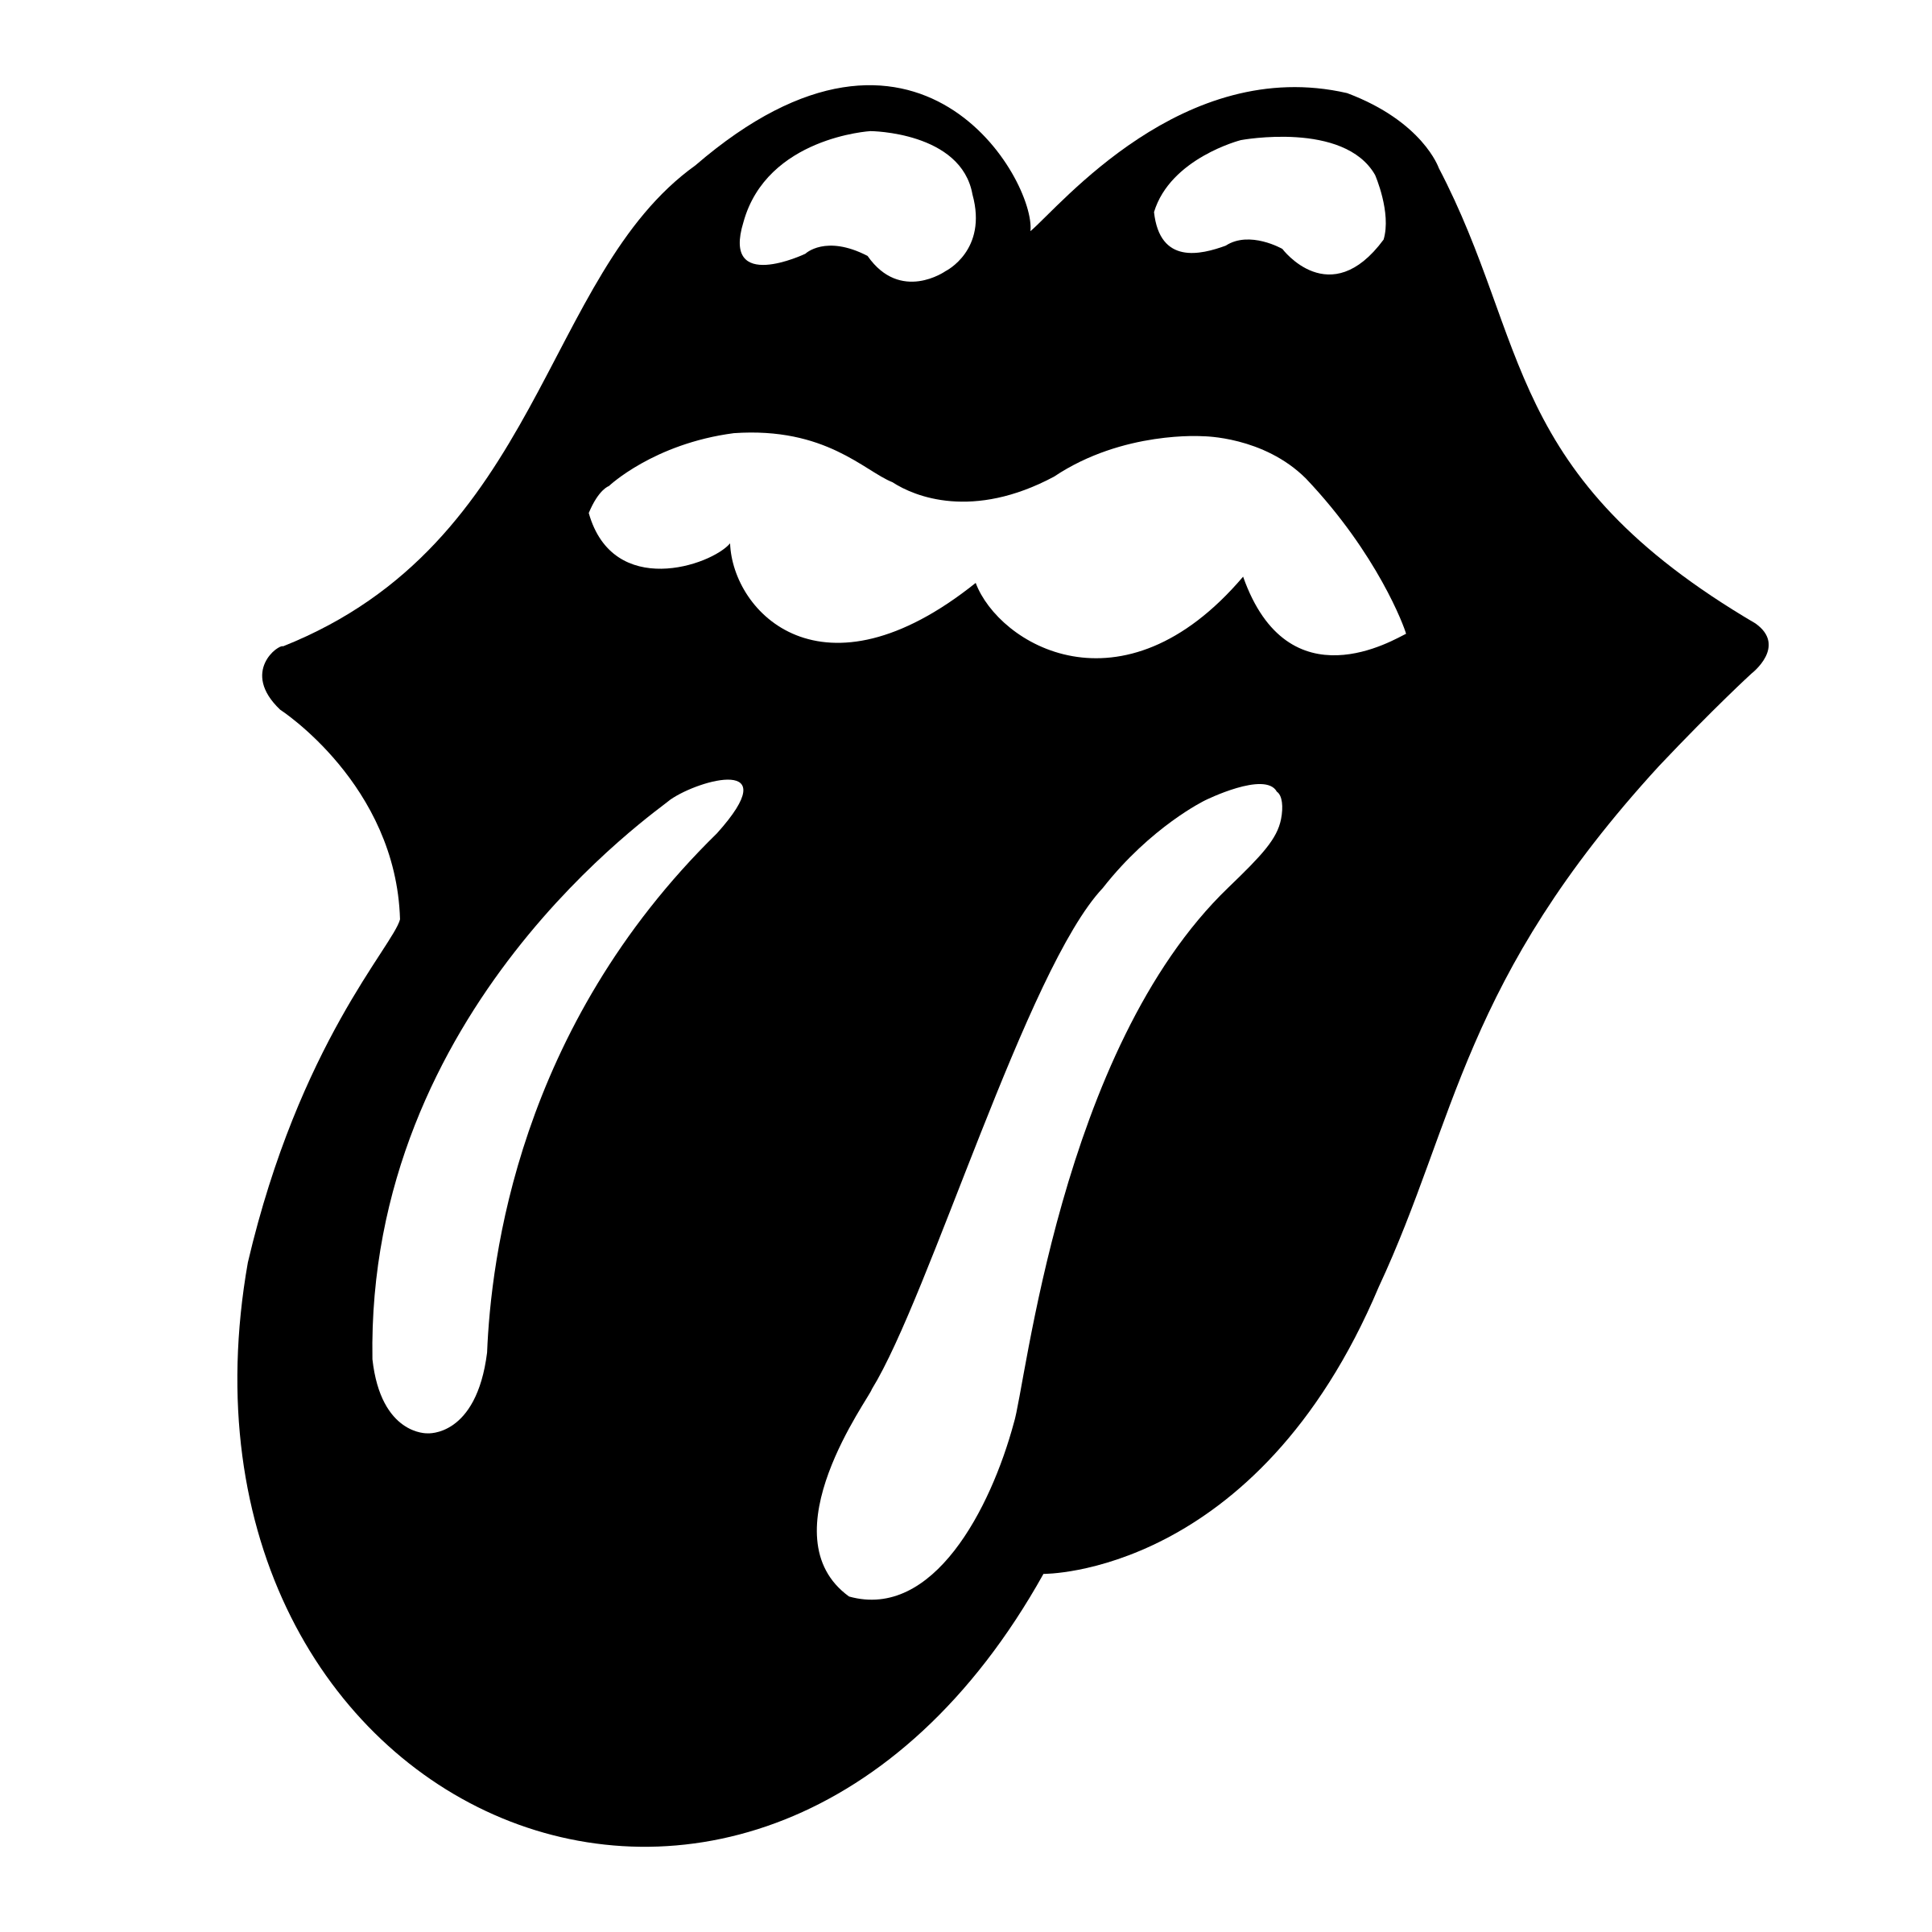 the rolling stones tongue logo png transparent amp svg